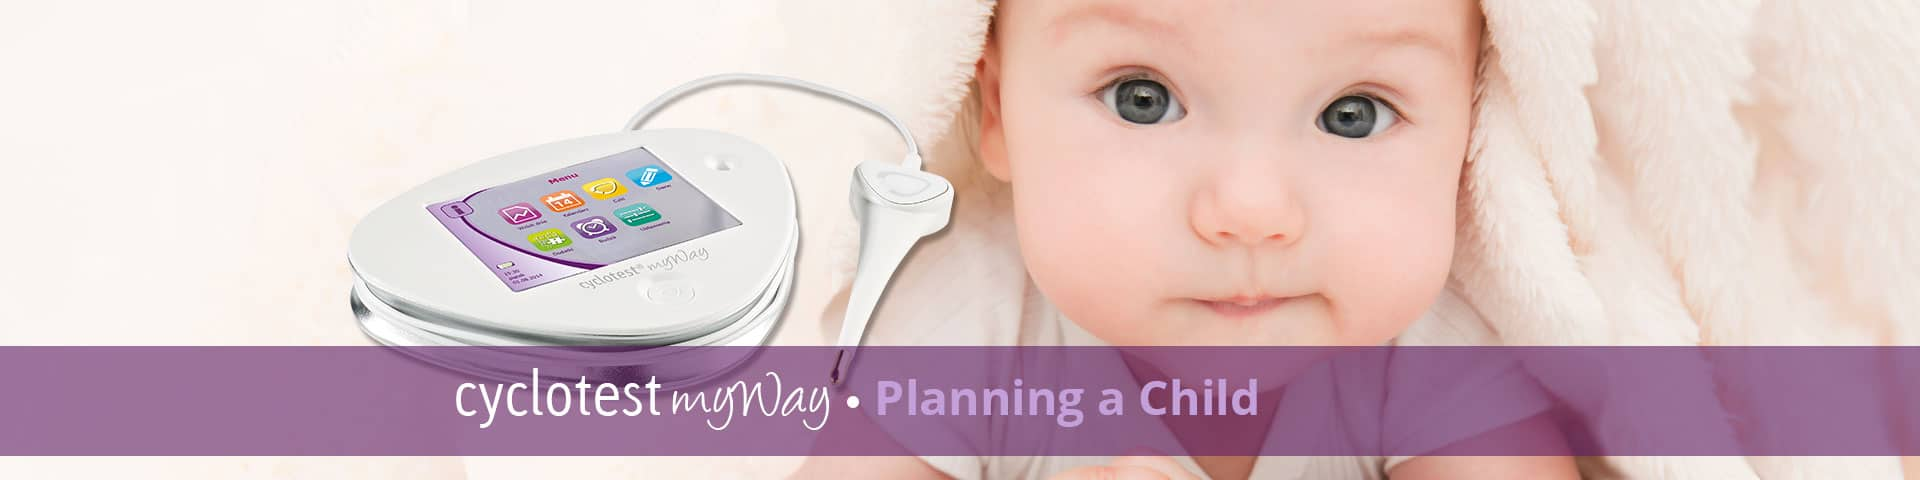 cyclotest myWay for planning a child